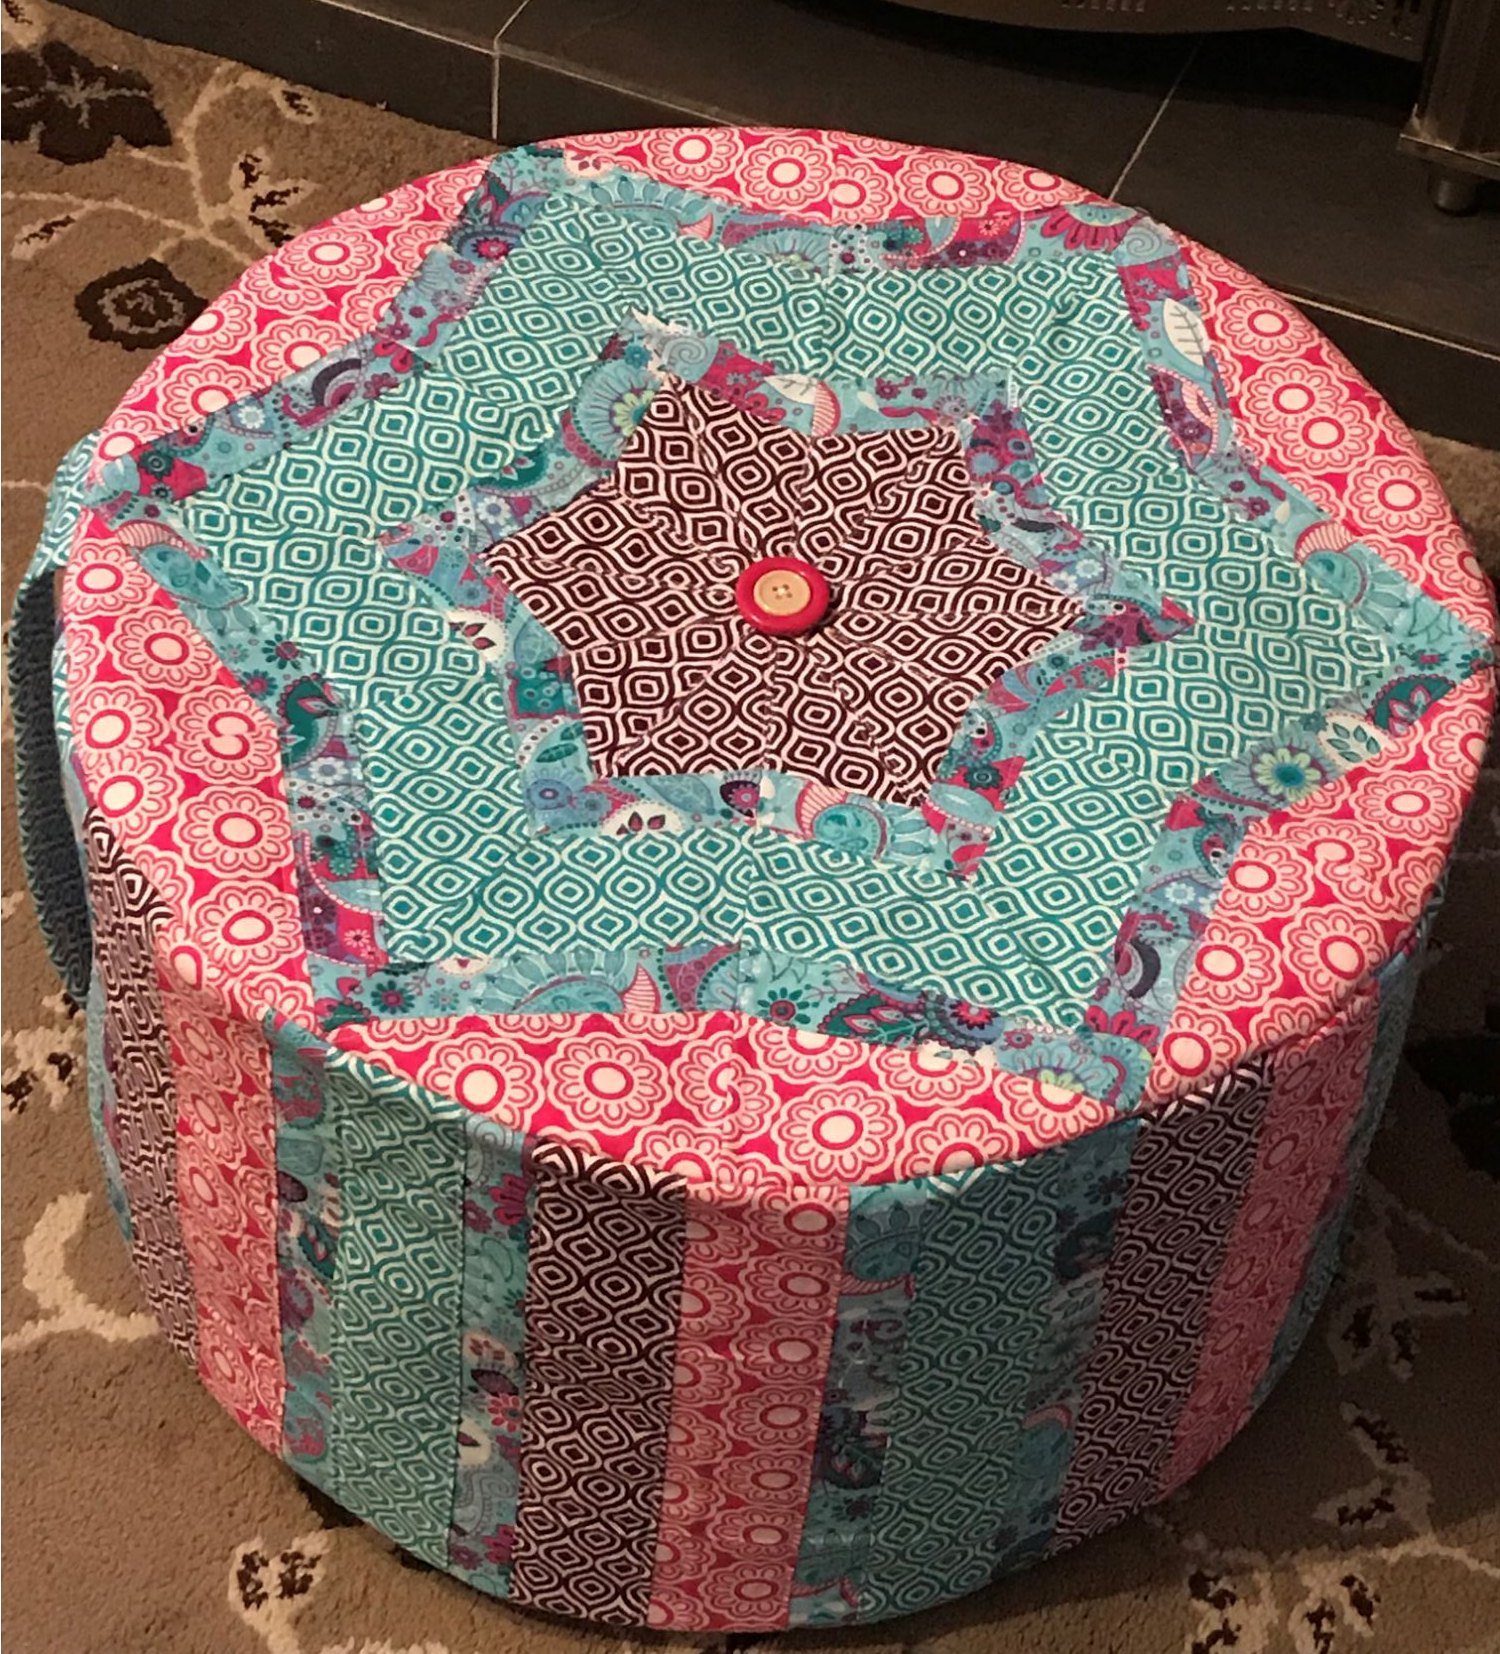 Debby's Patch quilted pouffe poof